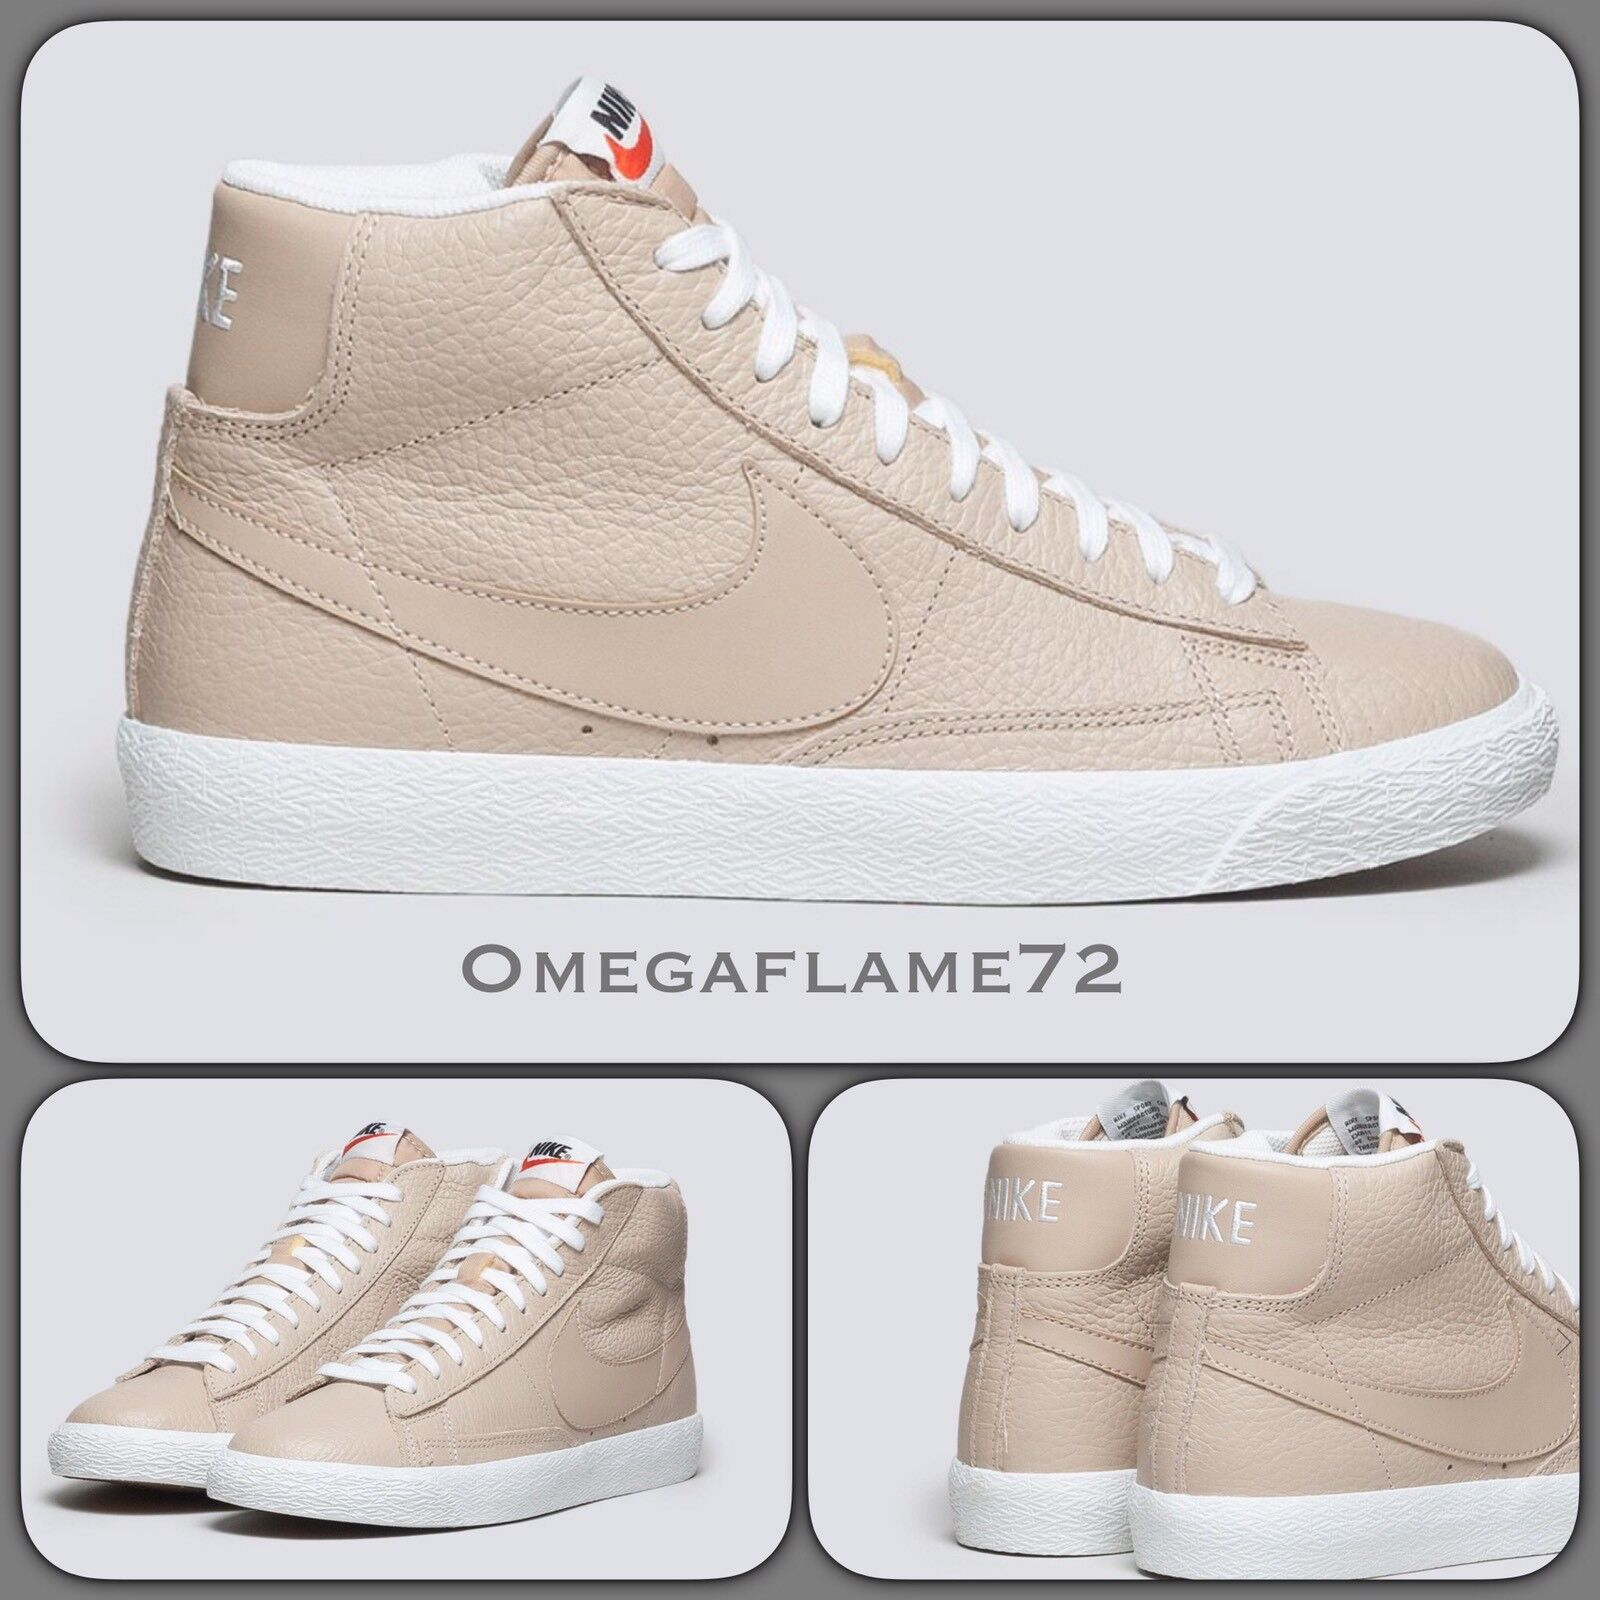 Nike Blazer Mid Premium Leather 429988-202 USA 10, Vachetta